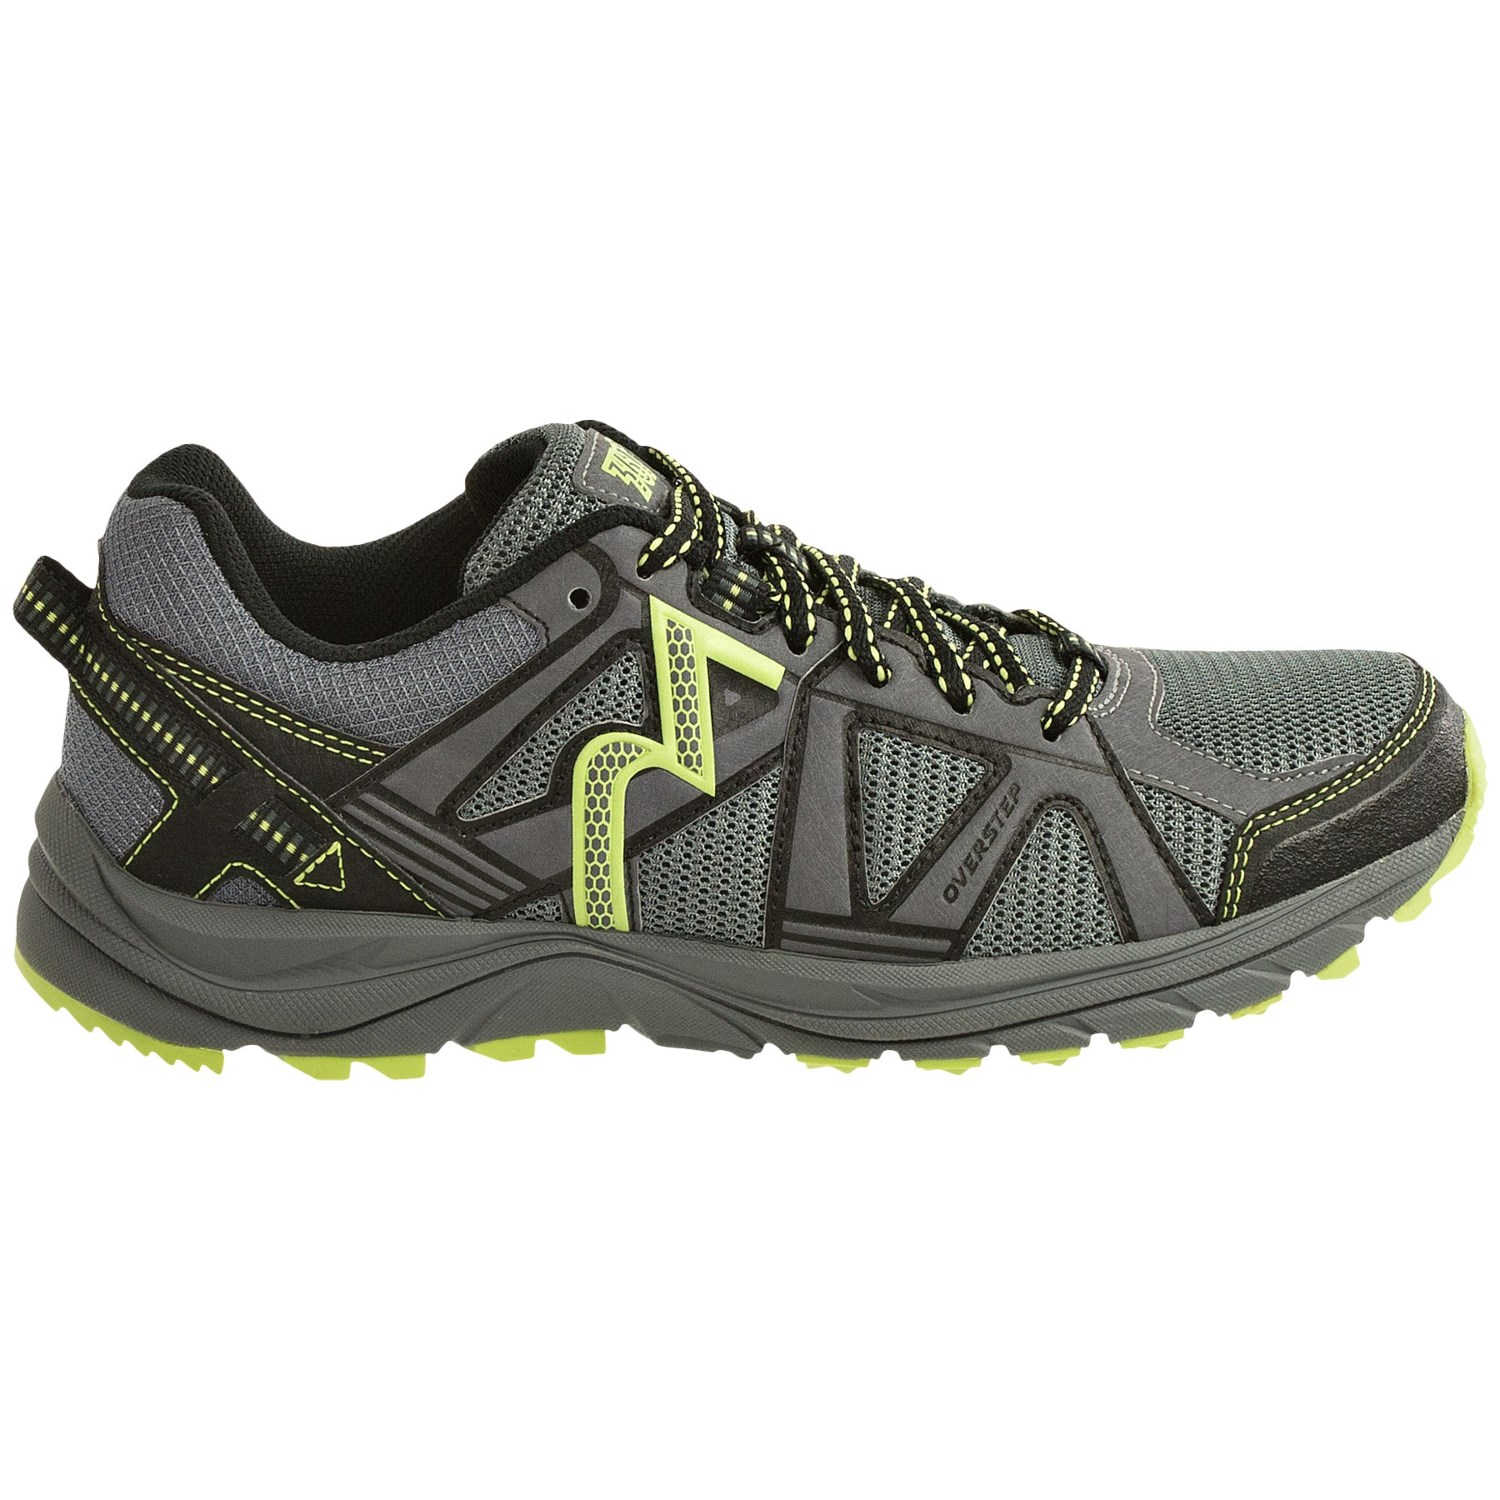 1807a2c1c94fa 361 Degrees Overstep Trail Running Shoes (For Women)